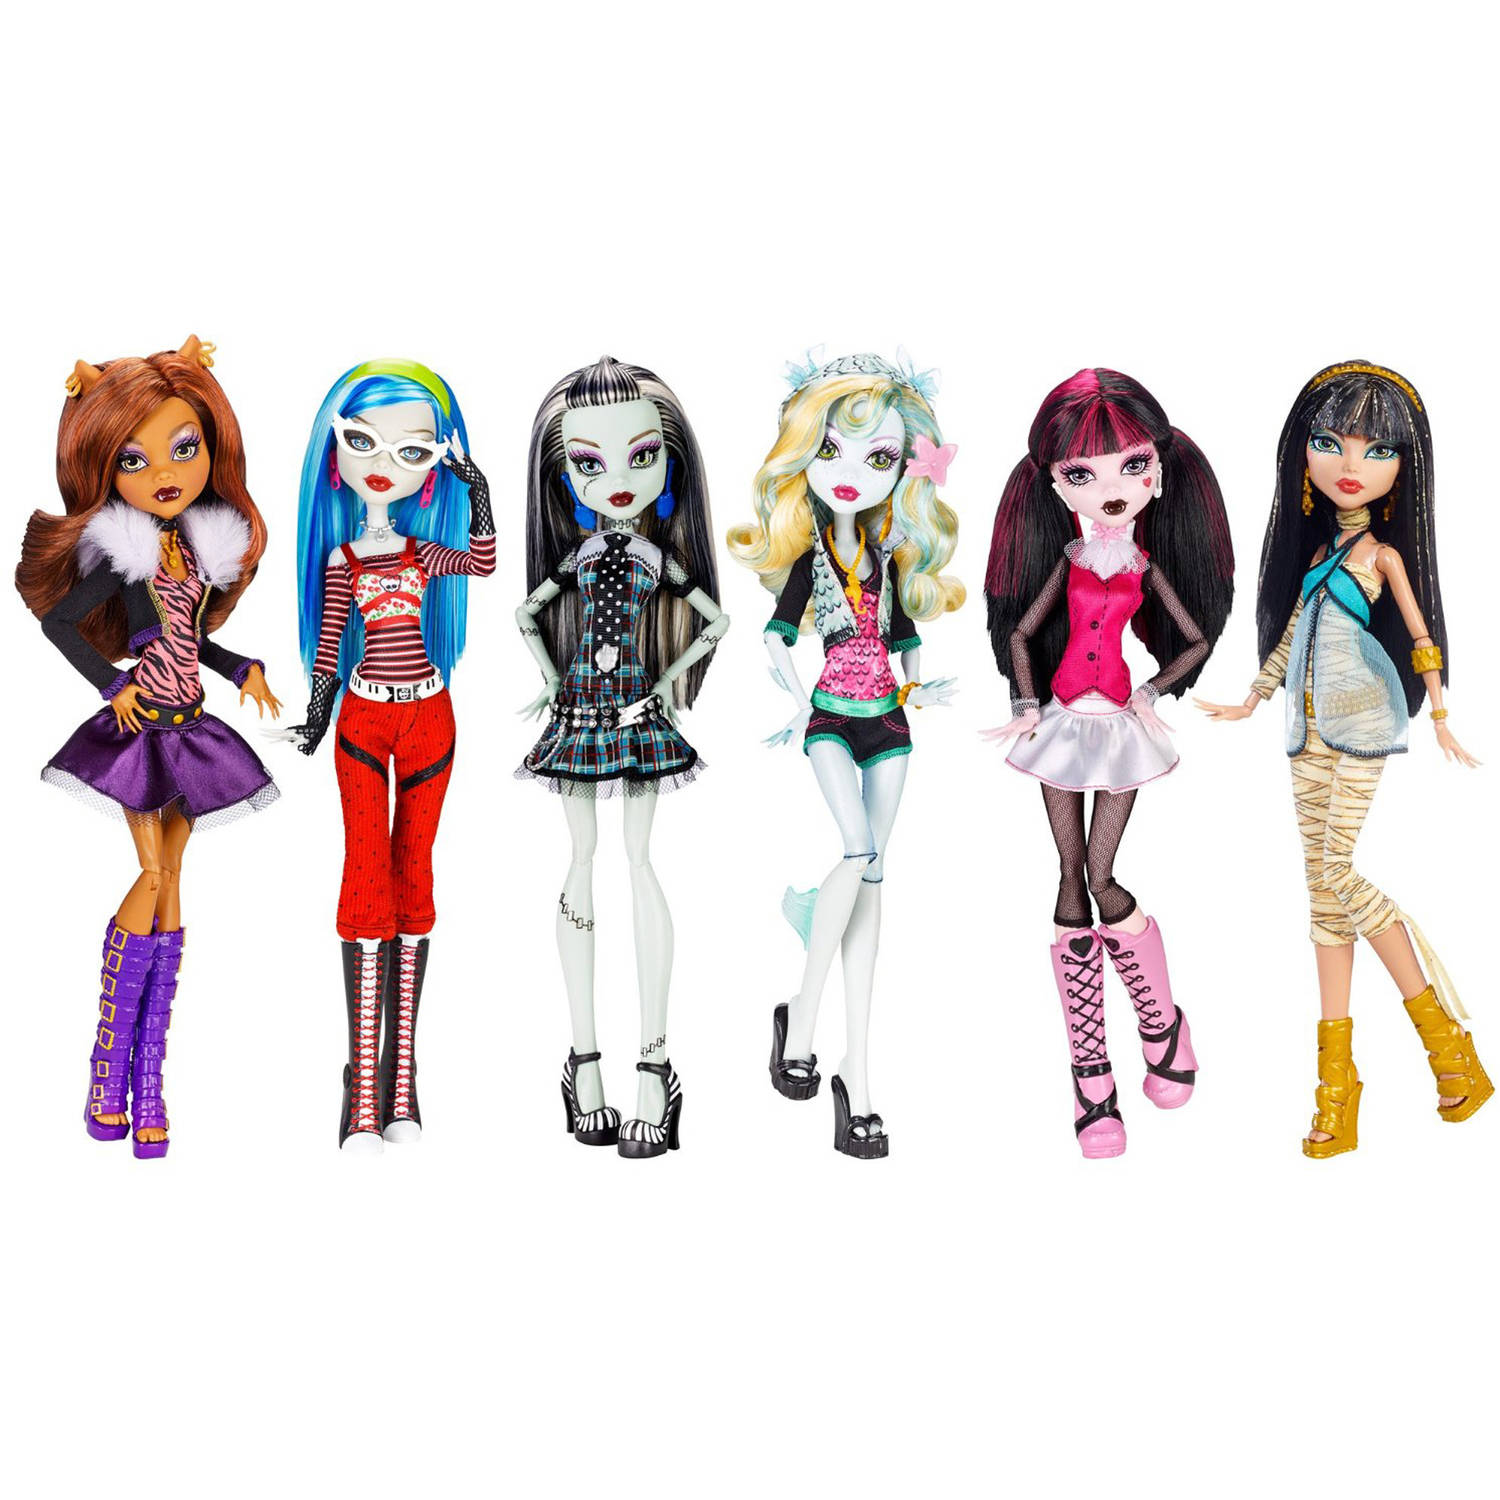 Monster High Original Dolls, 6-Pack